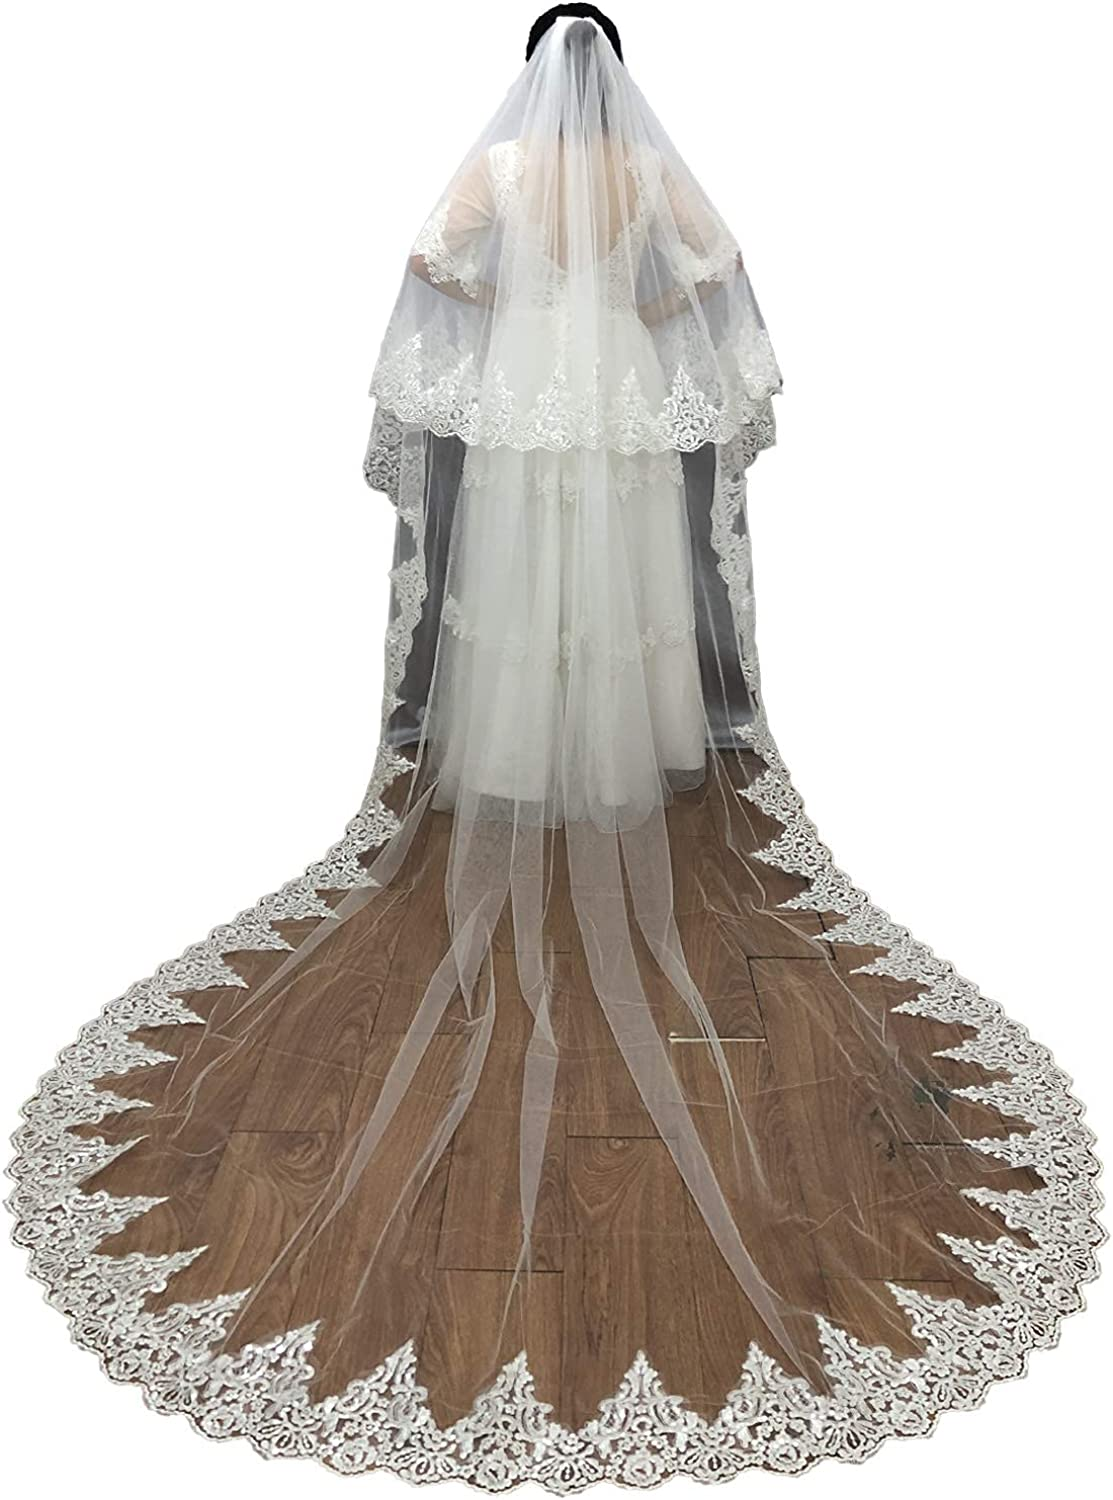 Faithclover Wedding Veils Long Length White Ivory 2T Cathedral Blusher with Comb